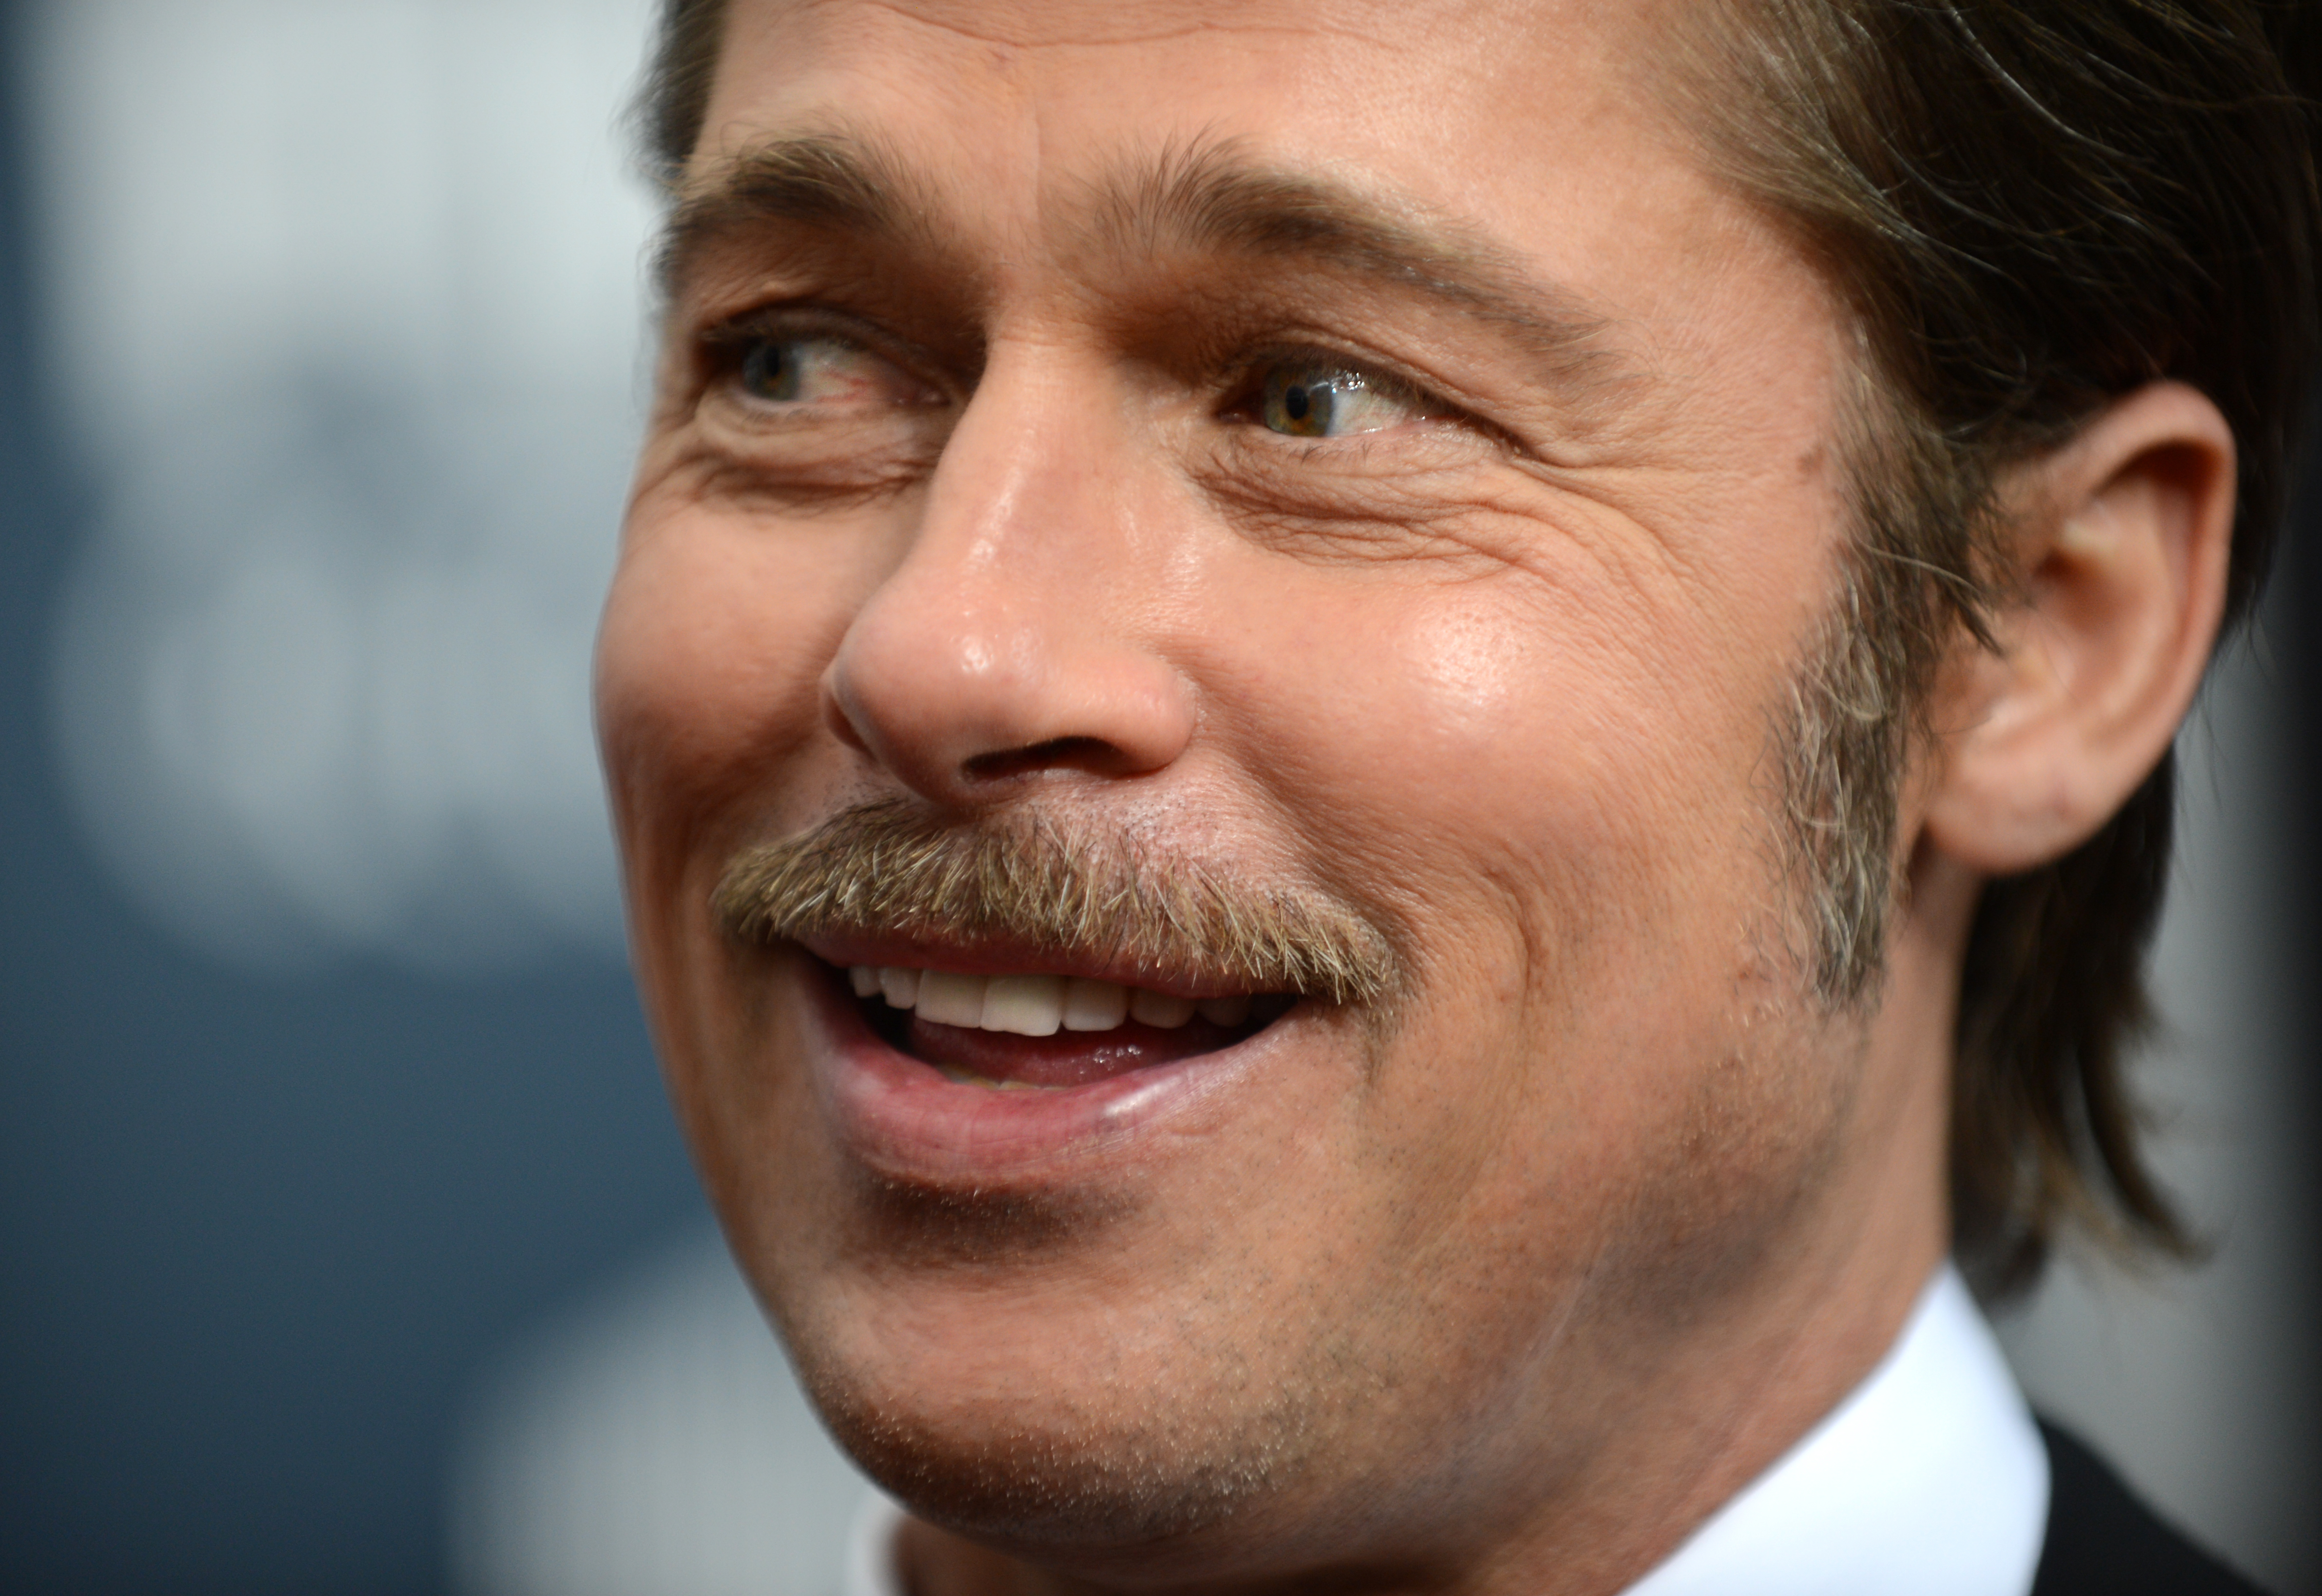 Brad Pitt bid United States dollars 120000 to watch GOT with Emilia Clarke